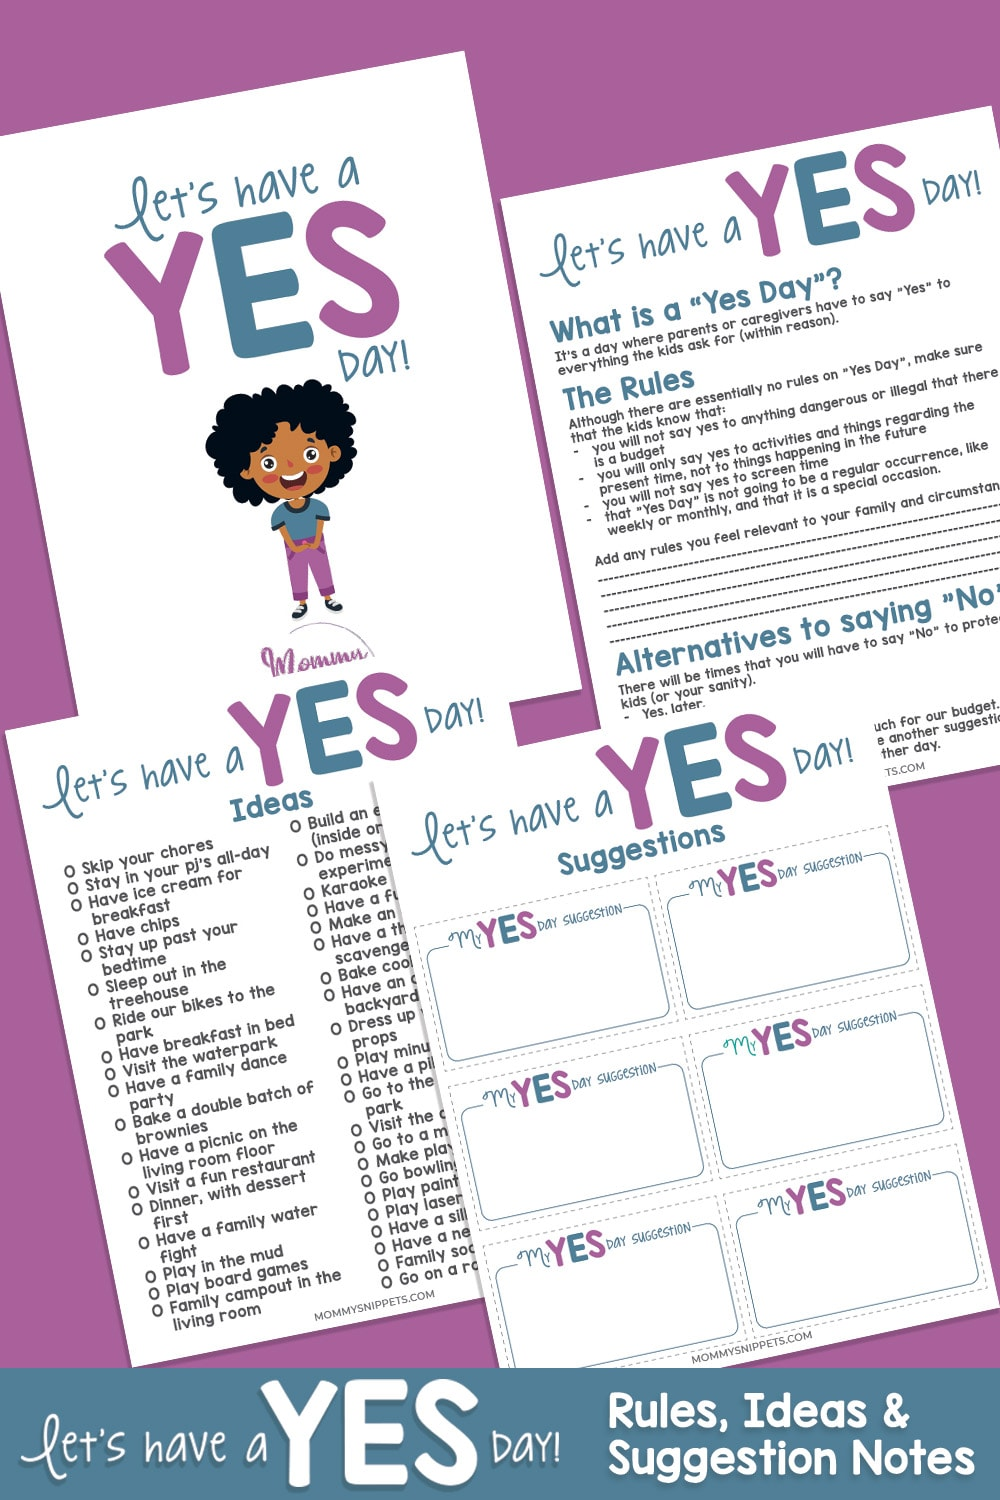 Make Unforgettable Memories for Your Kids With a Yes Day!-MommySnippets